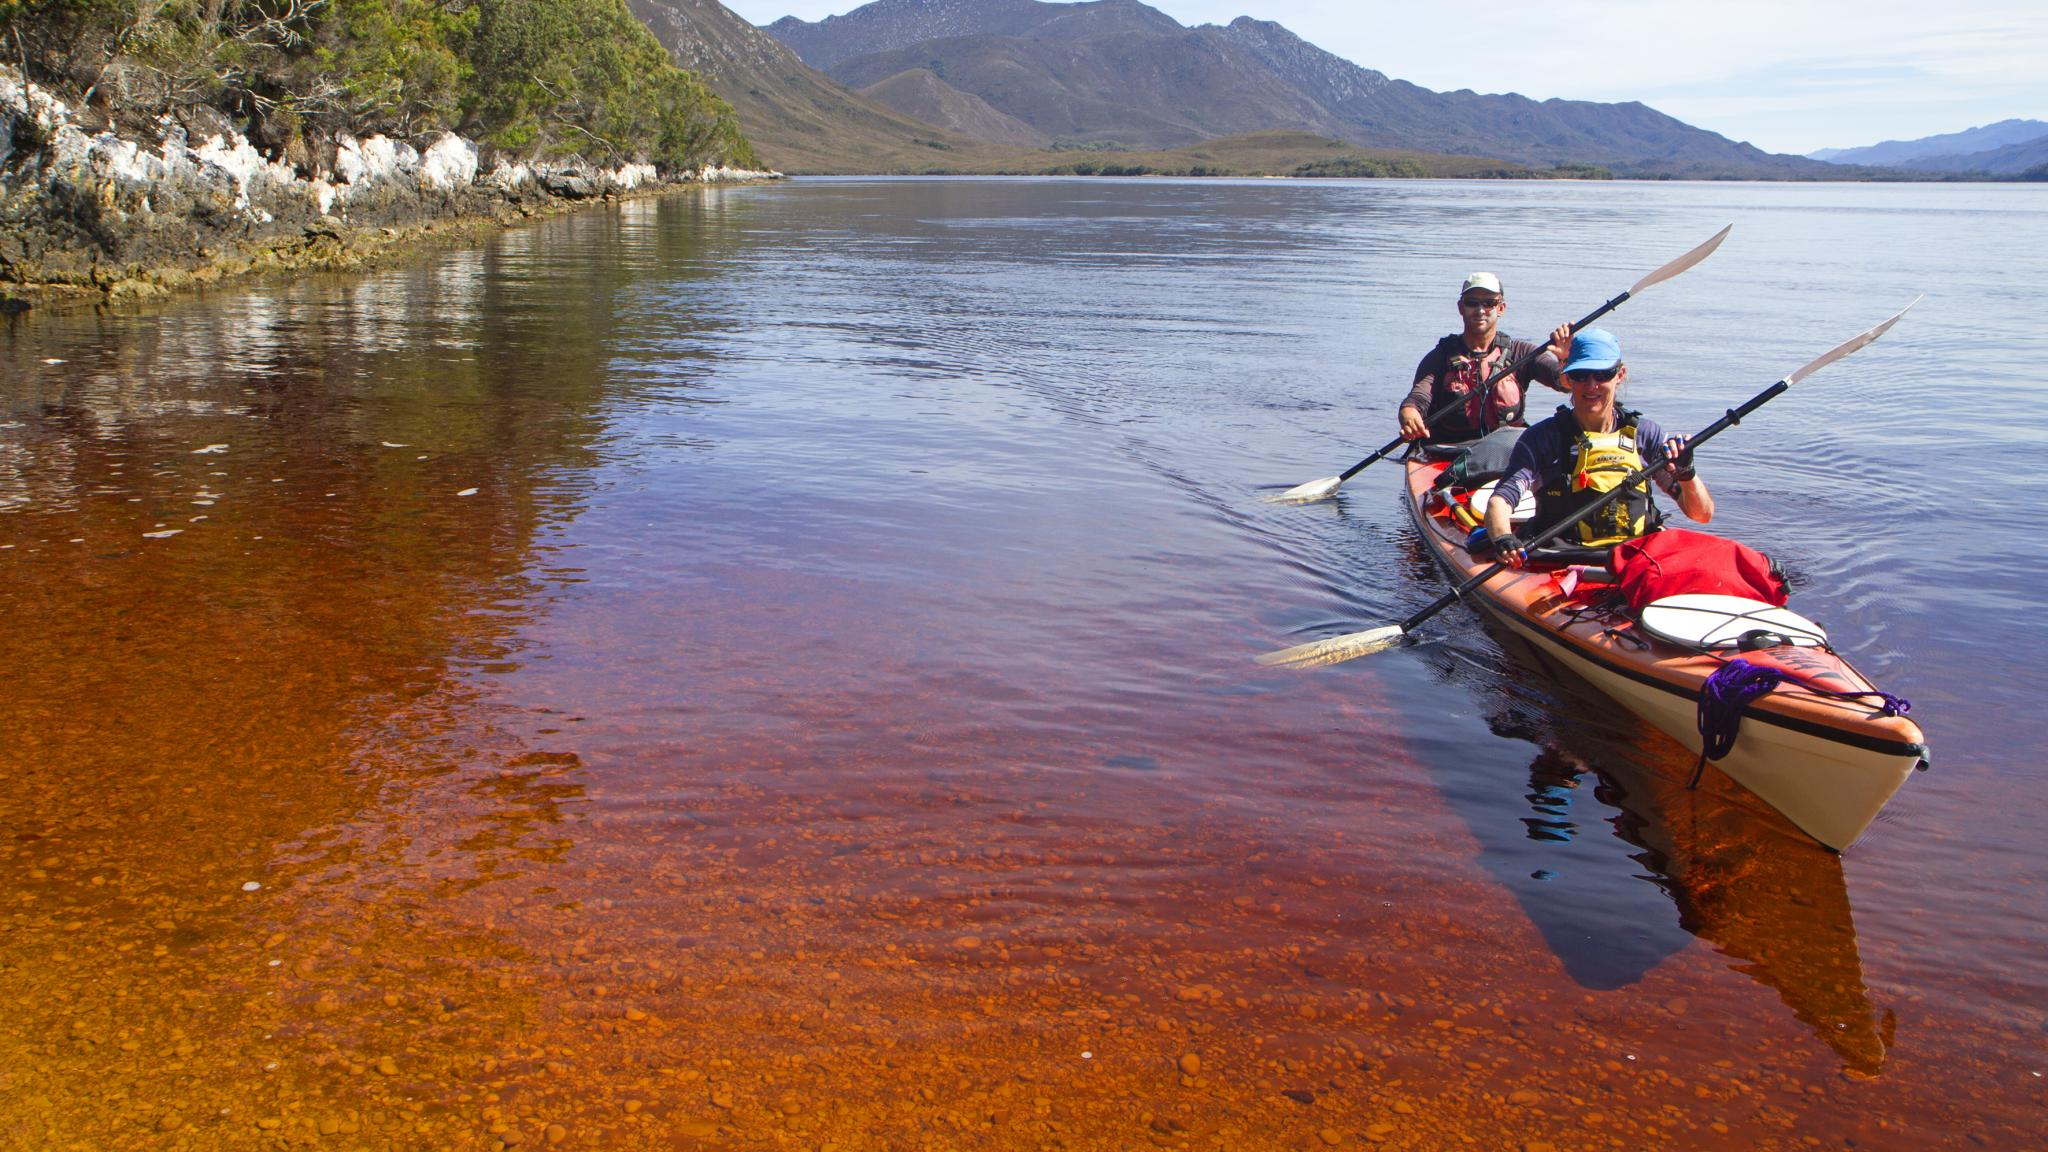 Roaring 40s Kayaking - Kayaking adventures Tasmania, kayaking in Southwest Tasmania